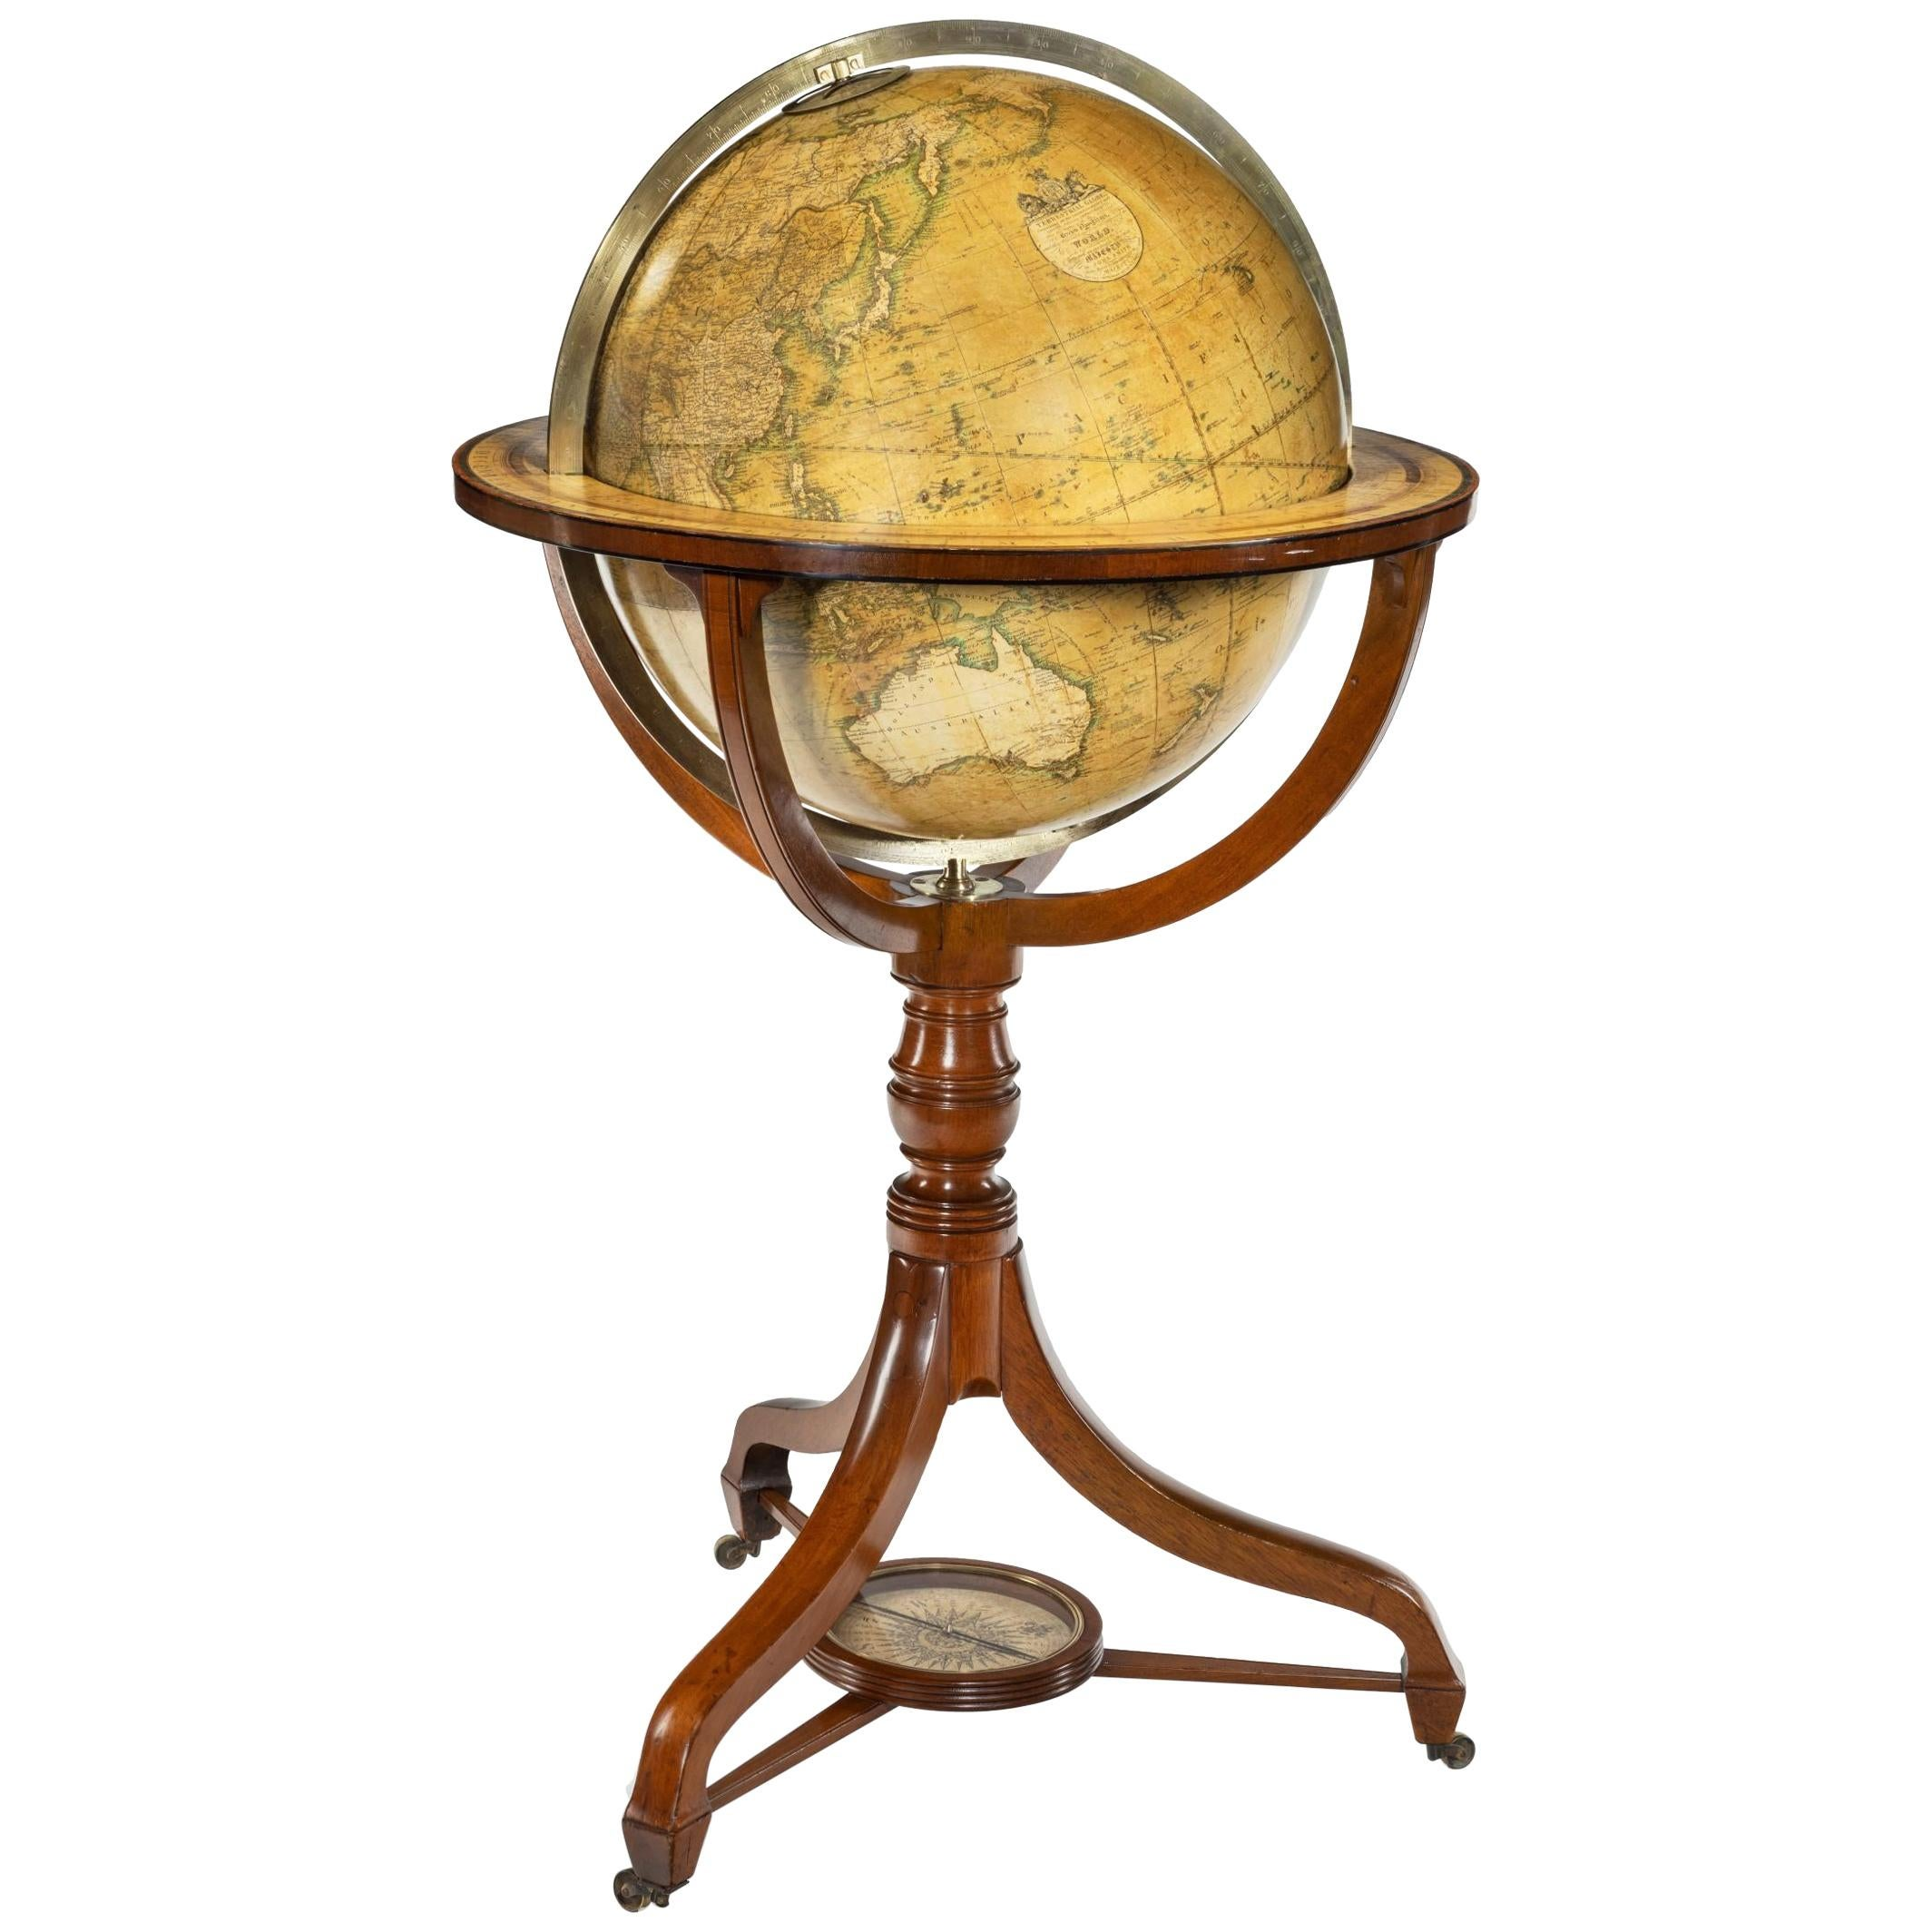 George IV Floor-Standing Library Globe by John Smith